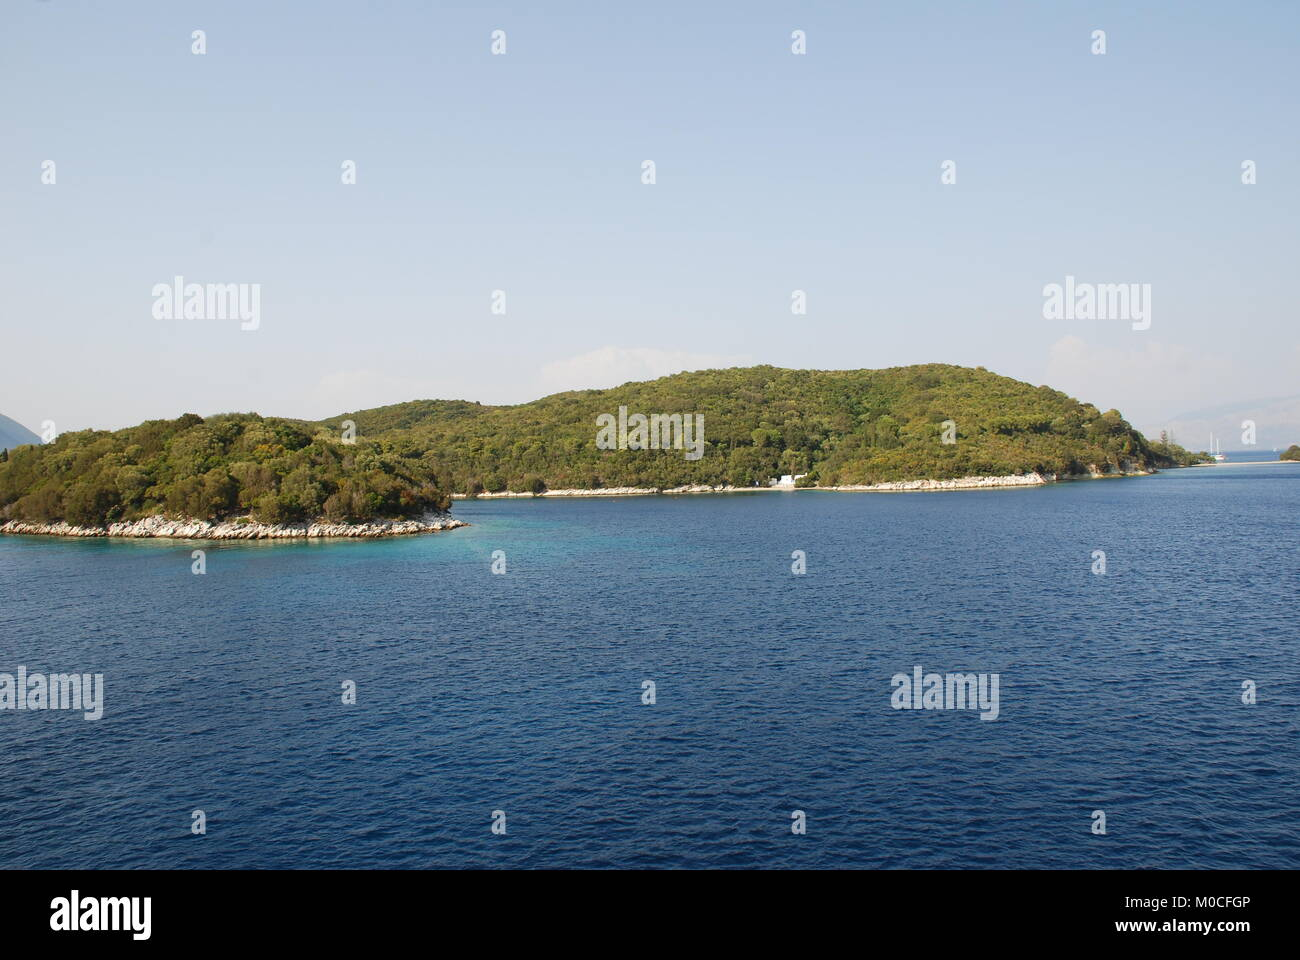 The small island of Skorpios off the coast of Lefkada, Greece. The island is the family home of the Onassis shipping - Stock Image